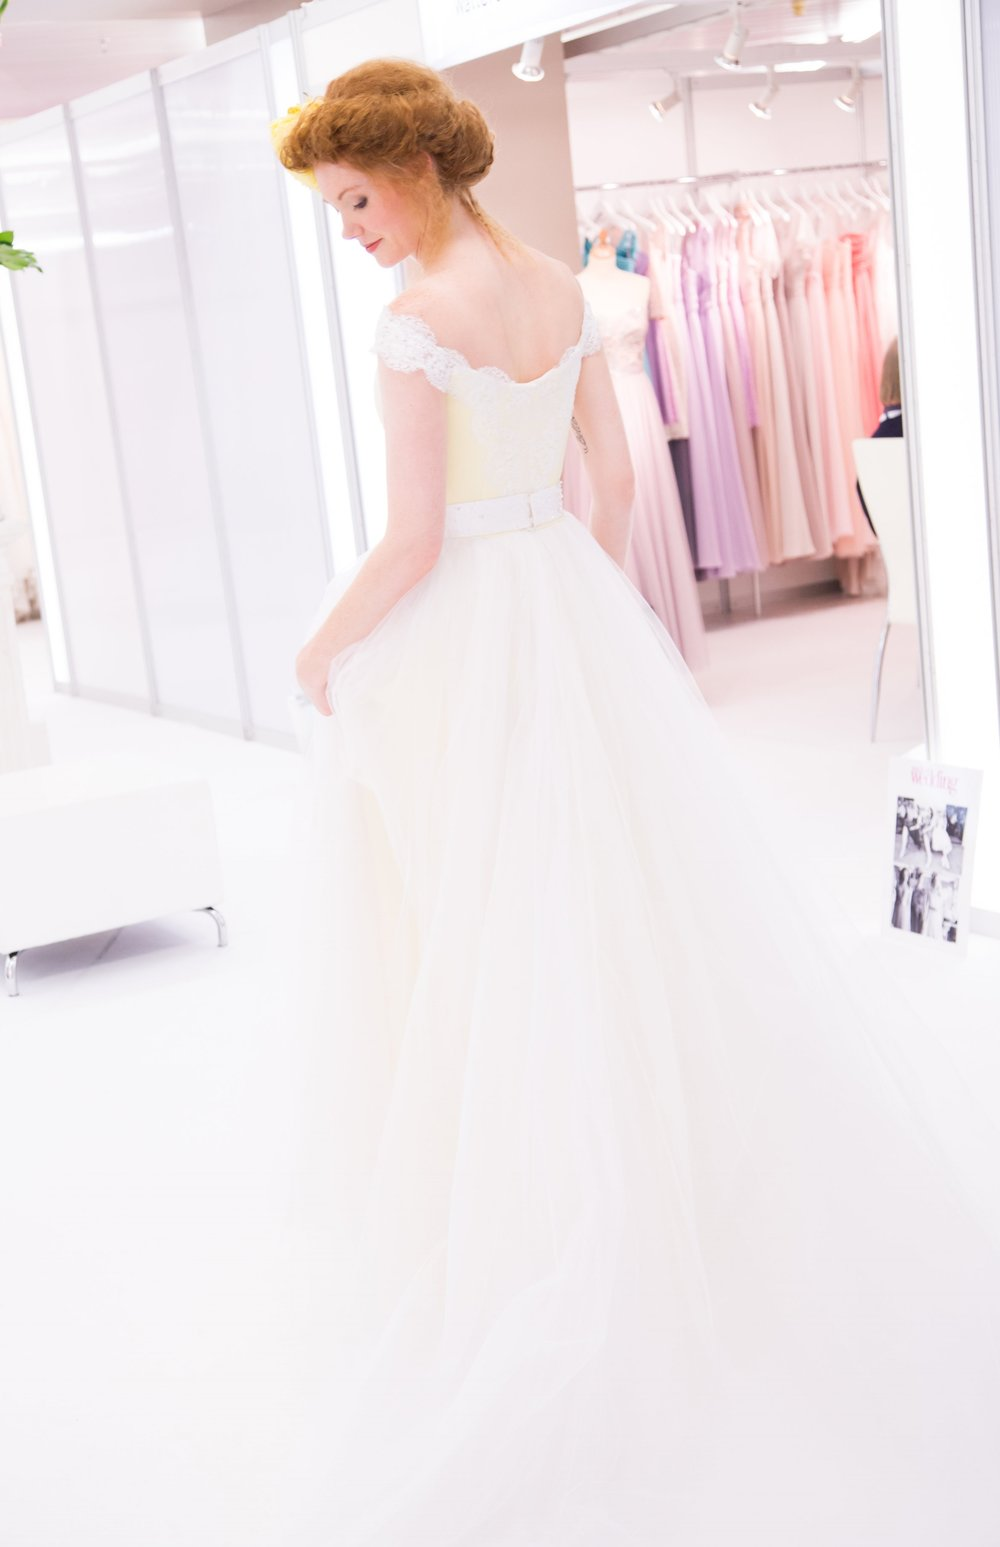 Ordering a Bespoke Bridal Gown...  - ....in 6 simple steps.